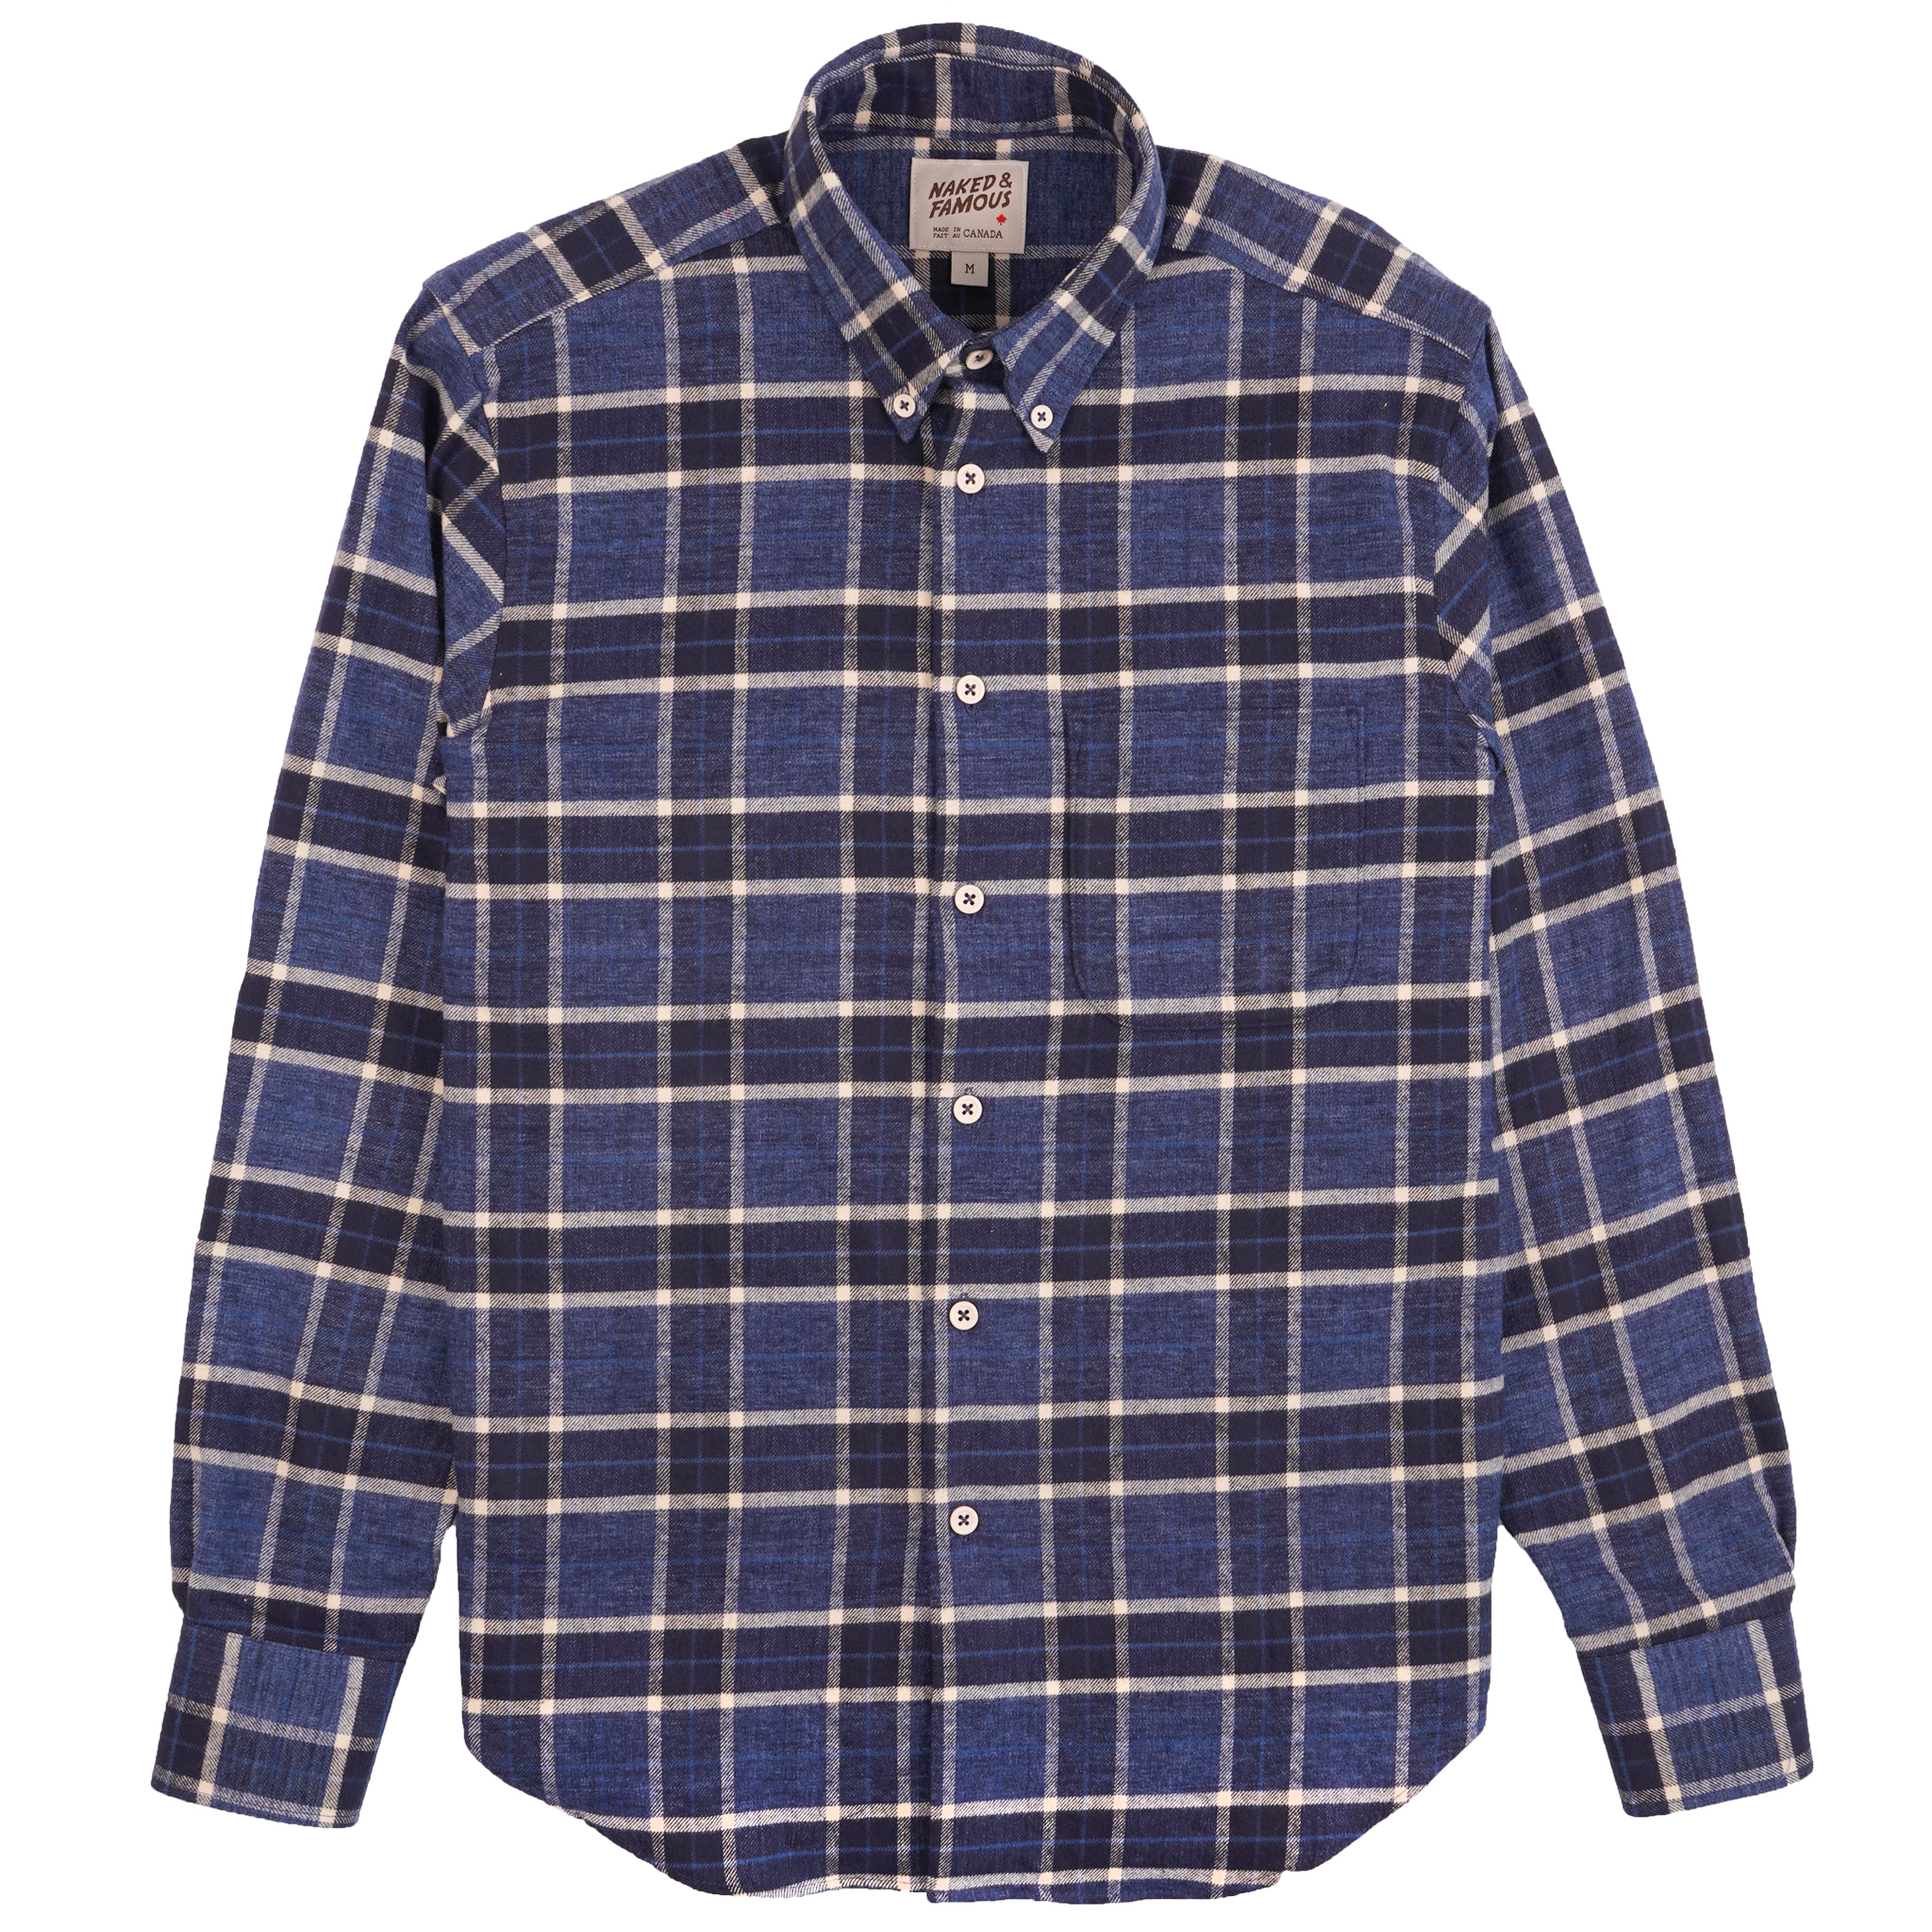 Northern Brushed Flannel - Blue/Navy - Easy Shirt